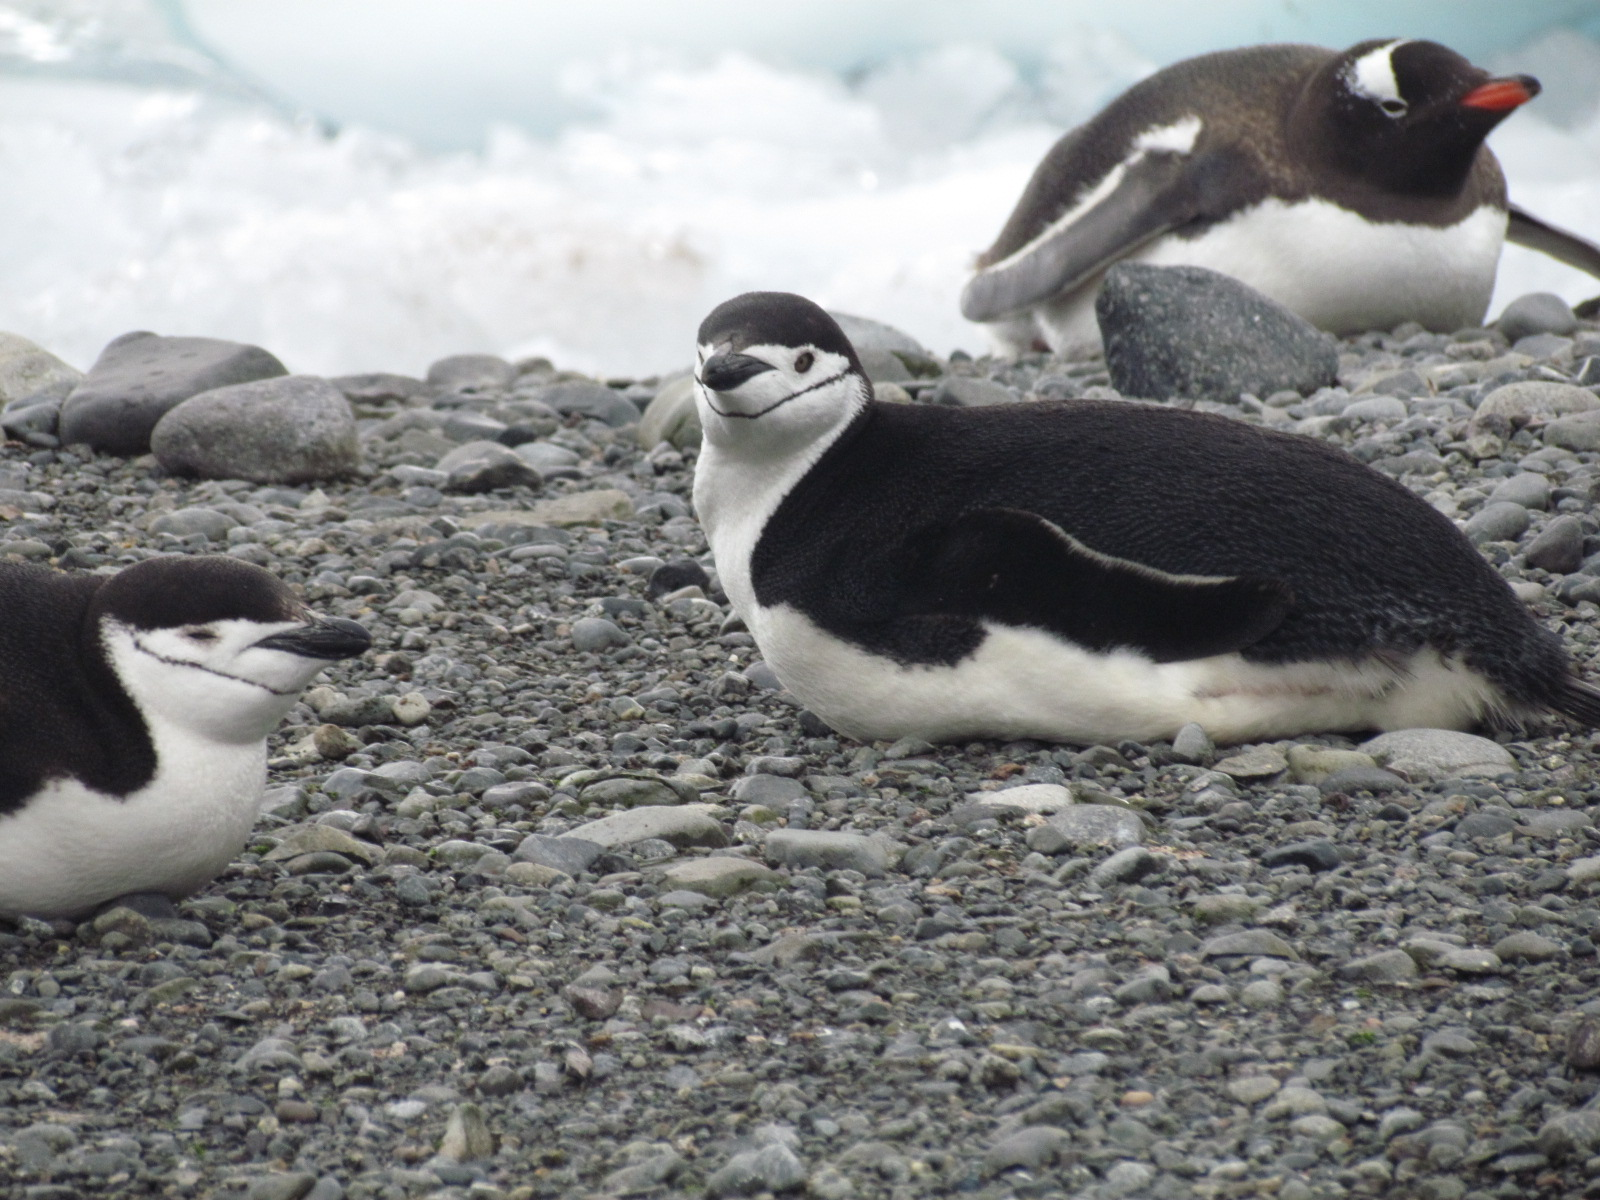 Chinstrap penguins in foreground, gentoo penguin in background right.